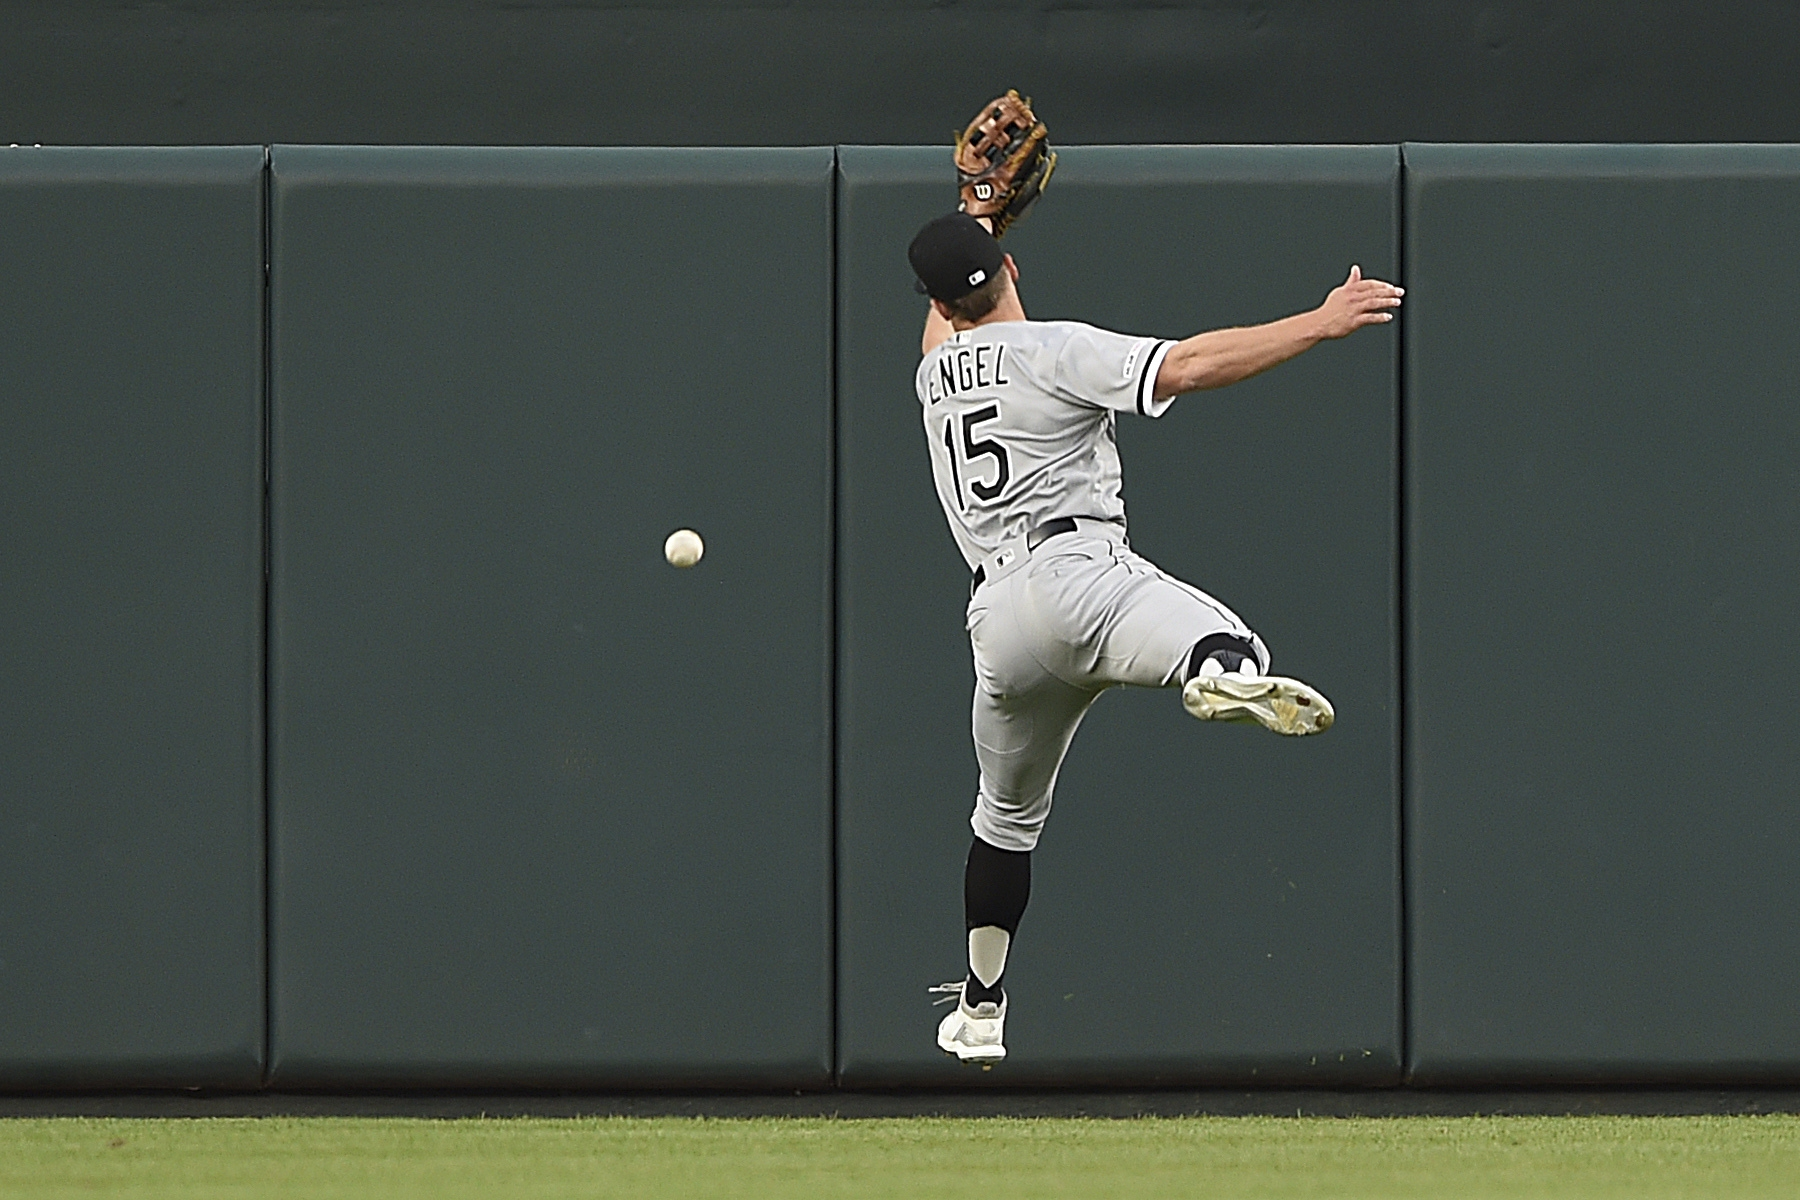 Chicago White Sox center fielder Adam Engel leaps but is unable to catch a fly ball hit by Baltimore Orioles' Dwight Smith Jr. in the first inning of a baseball game, Wednesday, April 24, 2019, in Baltimore. Smith Jr. earned a double on the play. (AP Photo/Gail Burton)